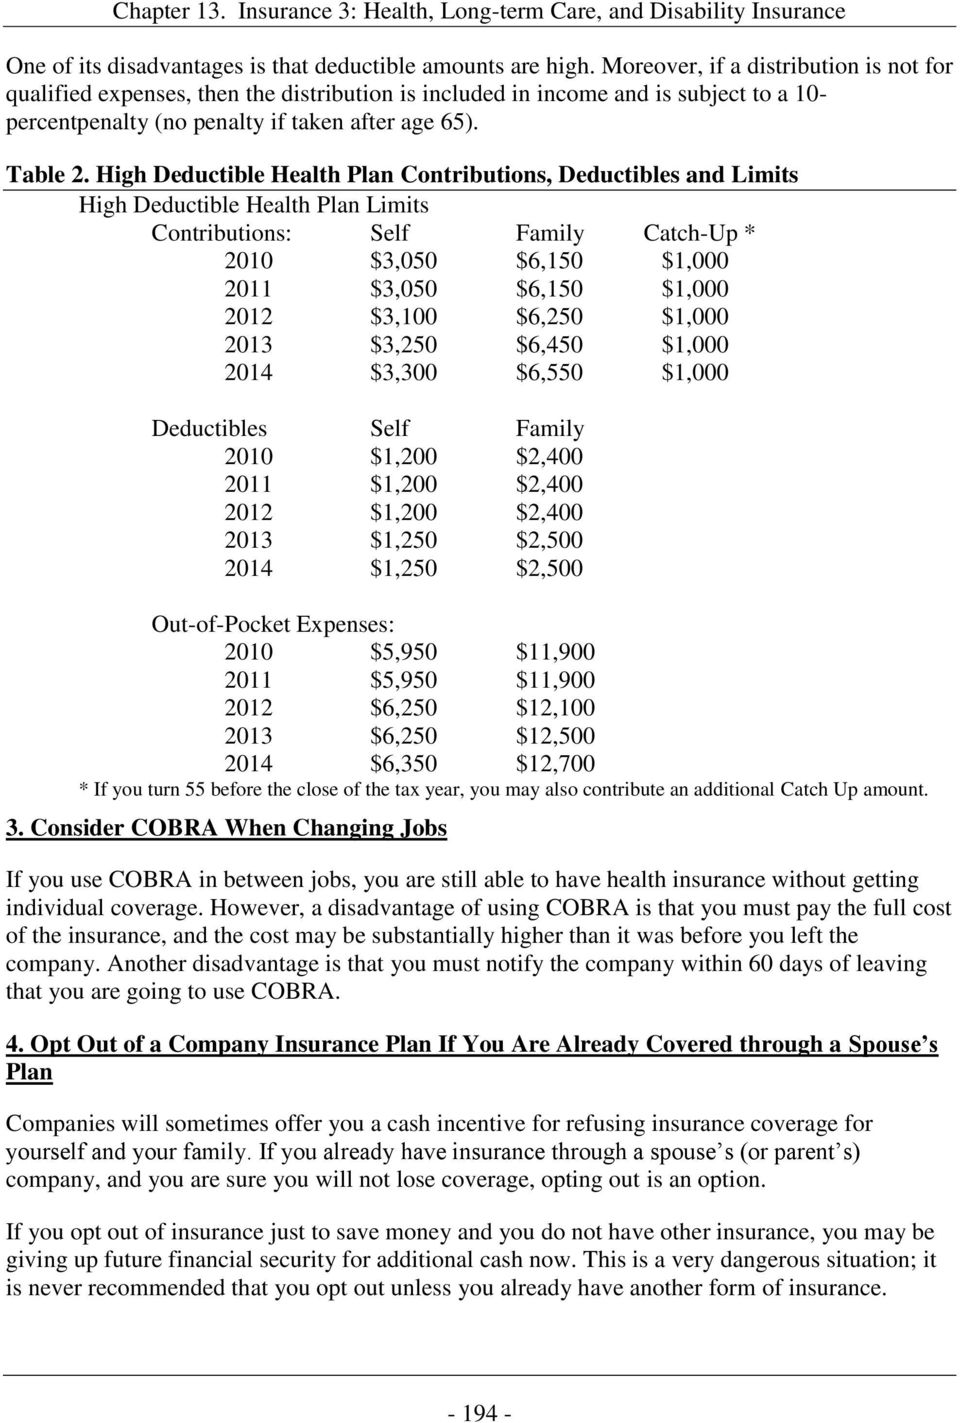 High Deductible Health Plan Contributions, Deductibles and Limits High Deductible Health Plan Limits Contributions: Self Family Catch-Up * 2010 $3,050 $6,150 $1,000 2011 $3,050 $6,150 $1,000 2012